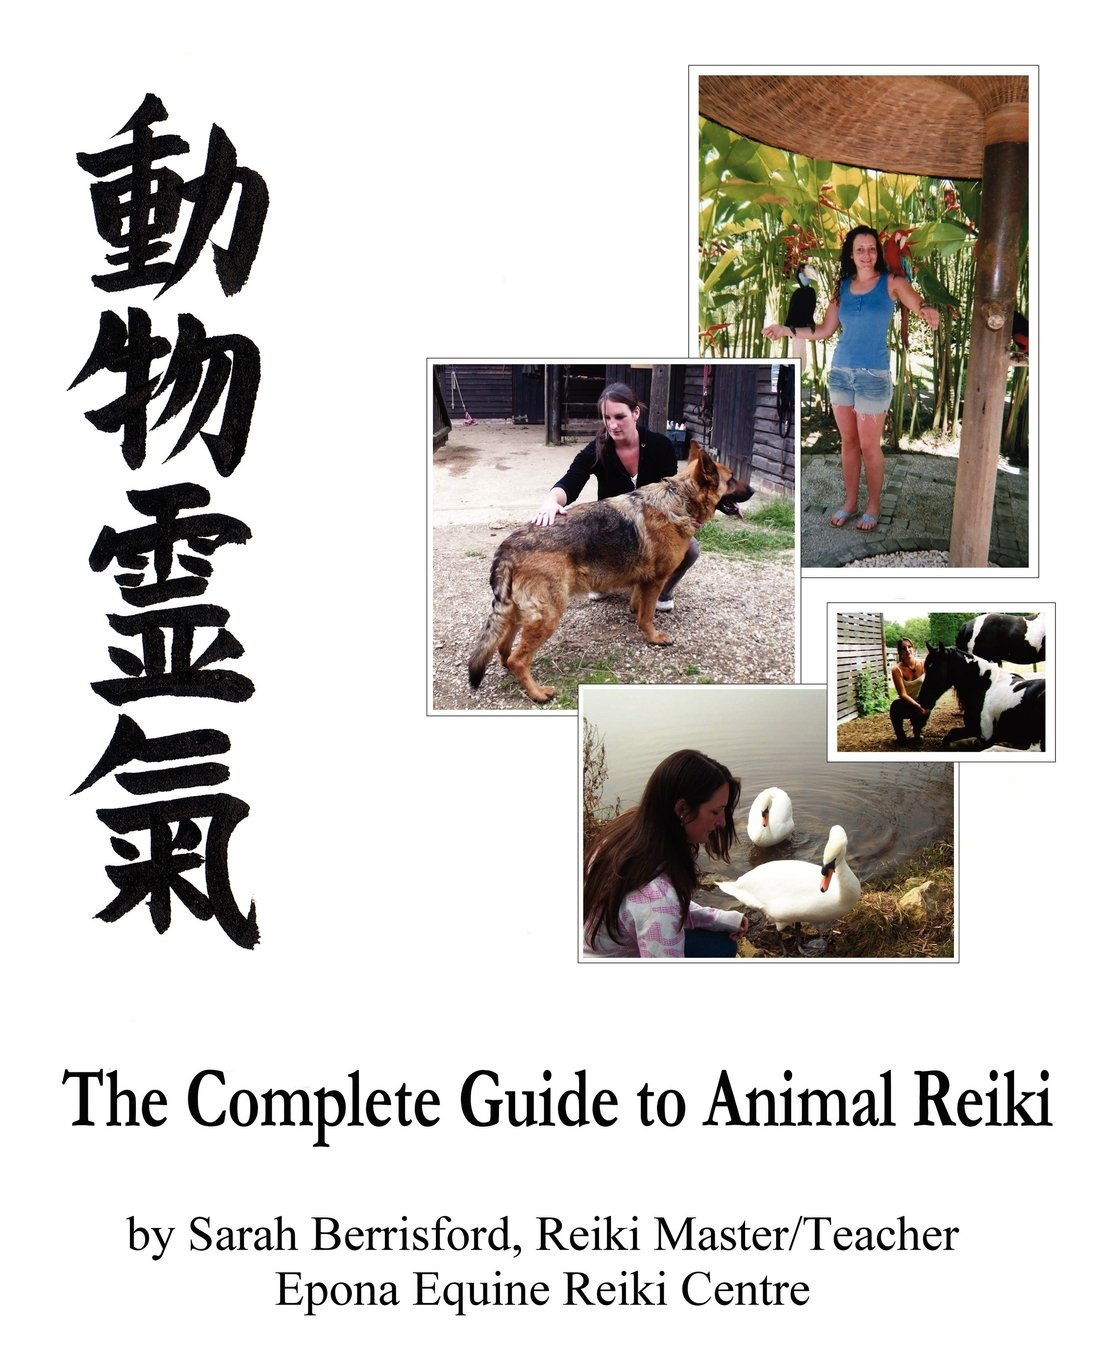 Complete guide to animals: jinny johnson: 9781845660949: amazon.